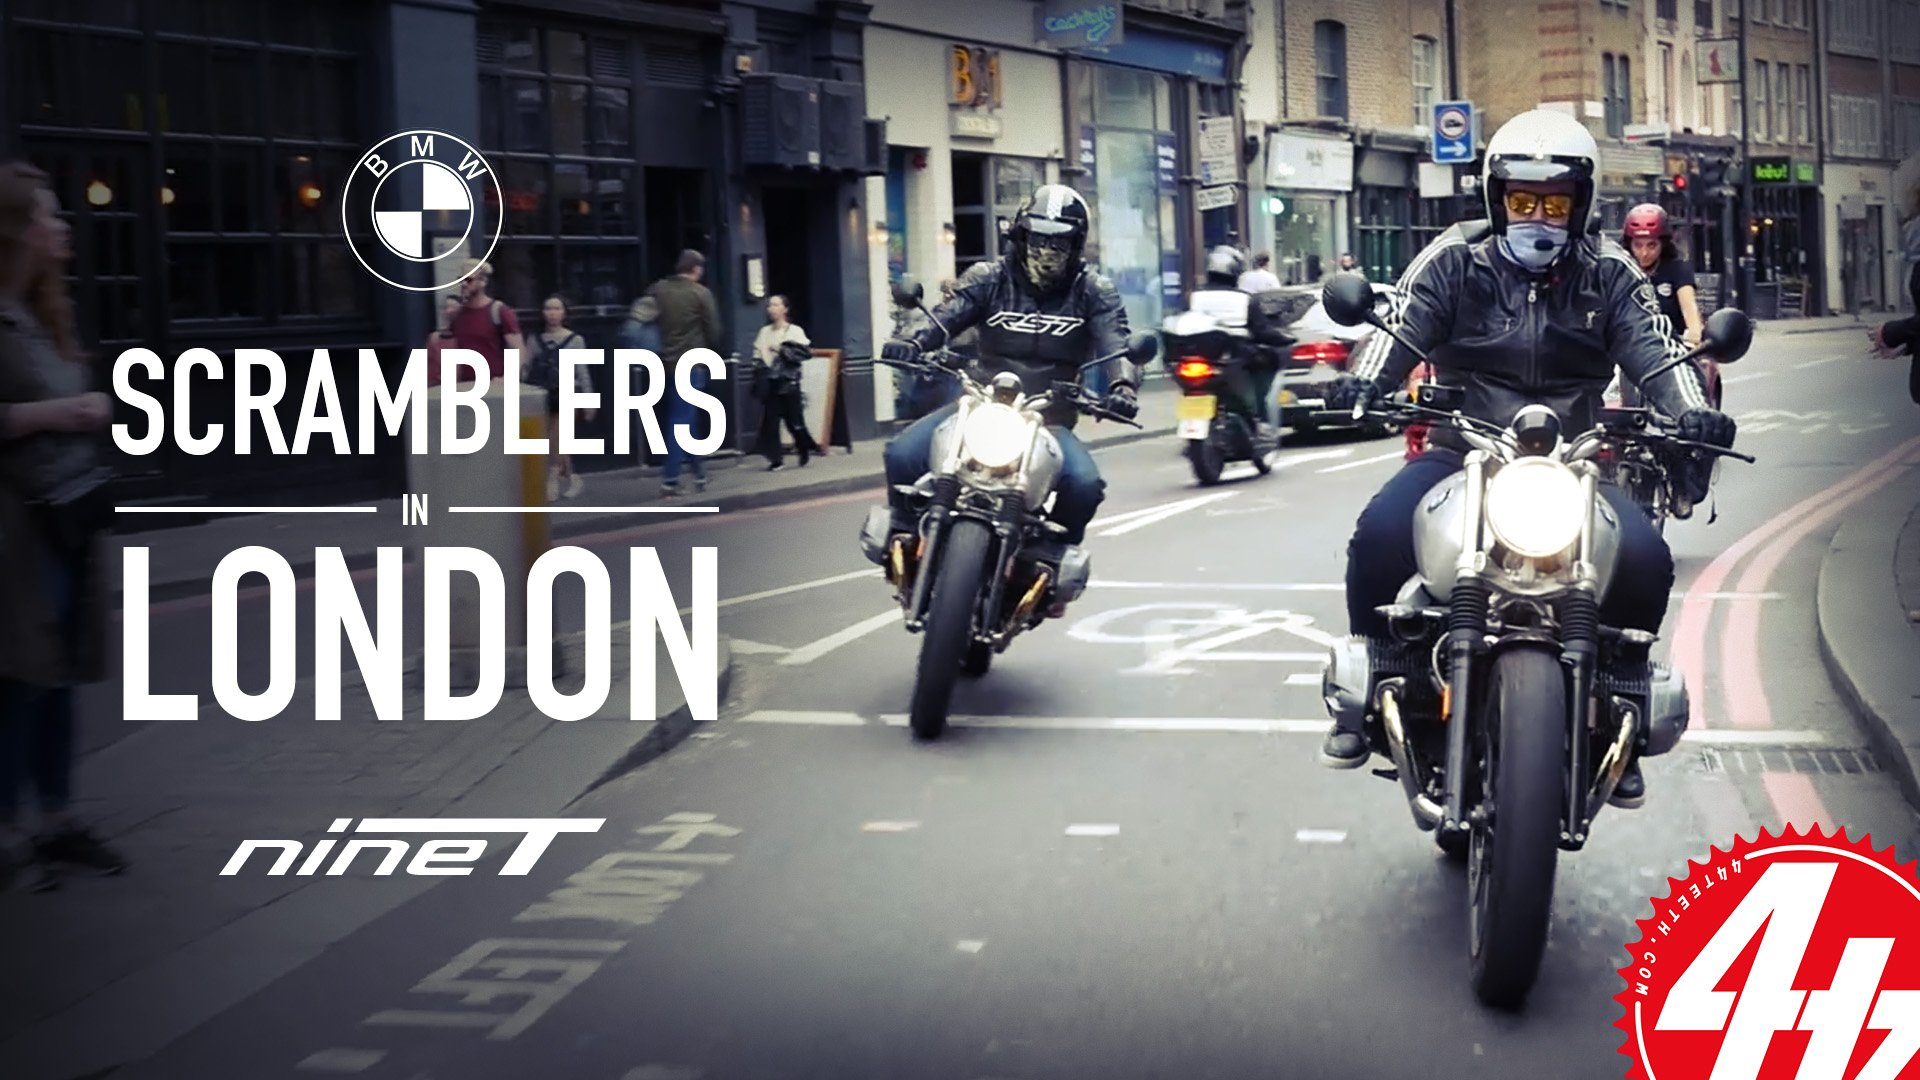 Video: BMW R nineT Scramblers in London